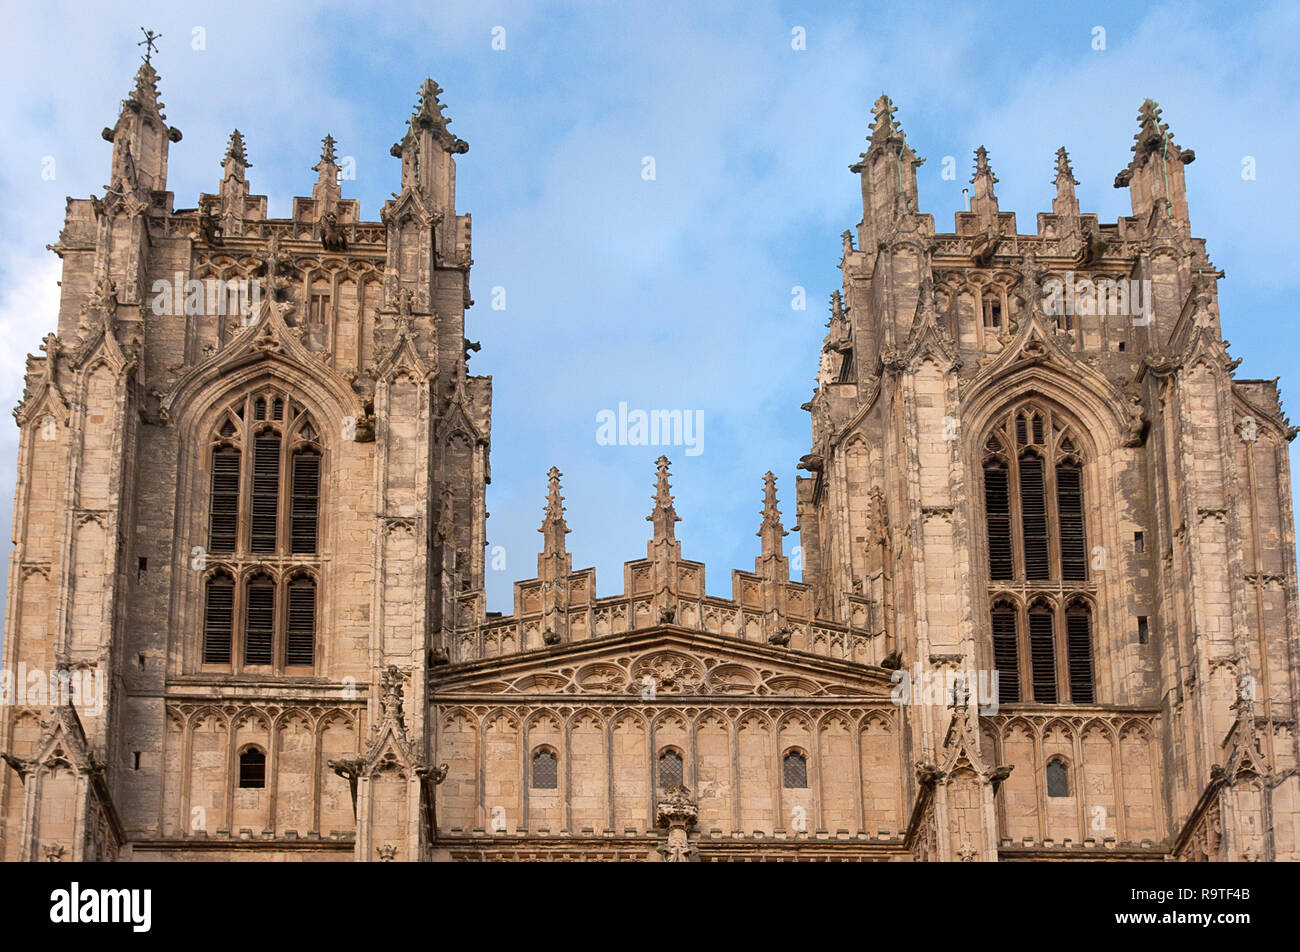 Beverley Minster in Beverley, East Riding of Yorkshire, parish Church of England. It is one of the largest parish churches in the UK Stock Photo